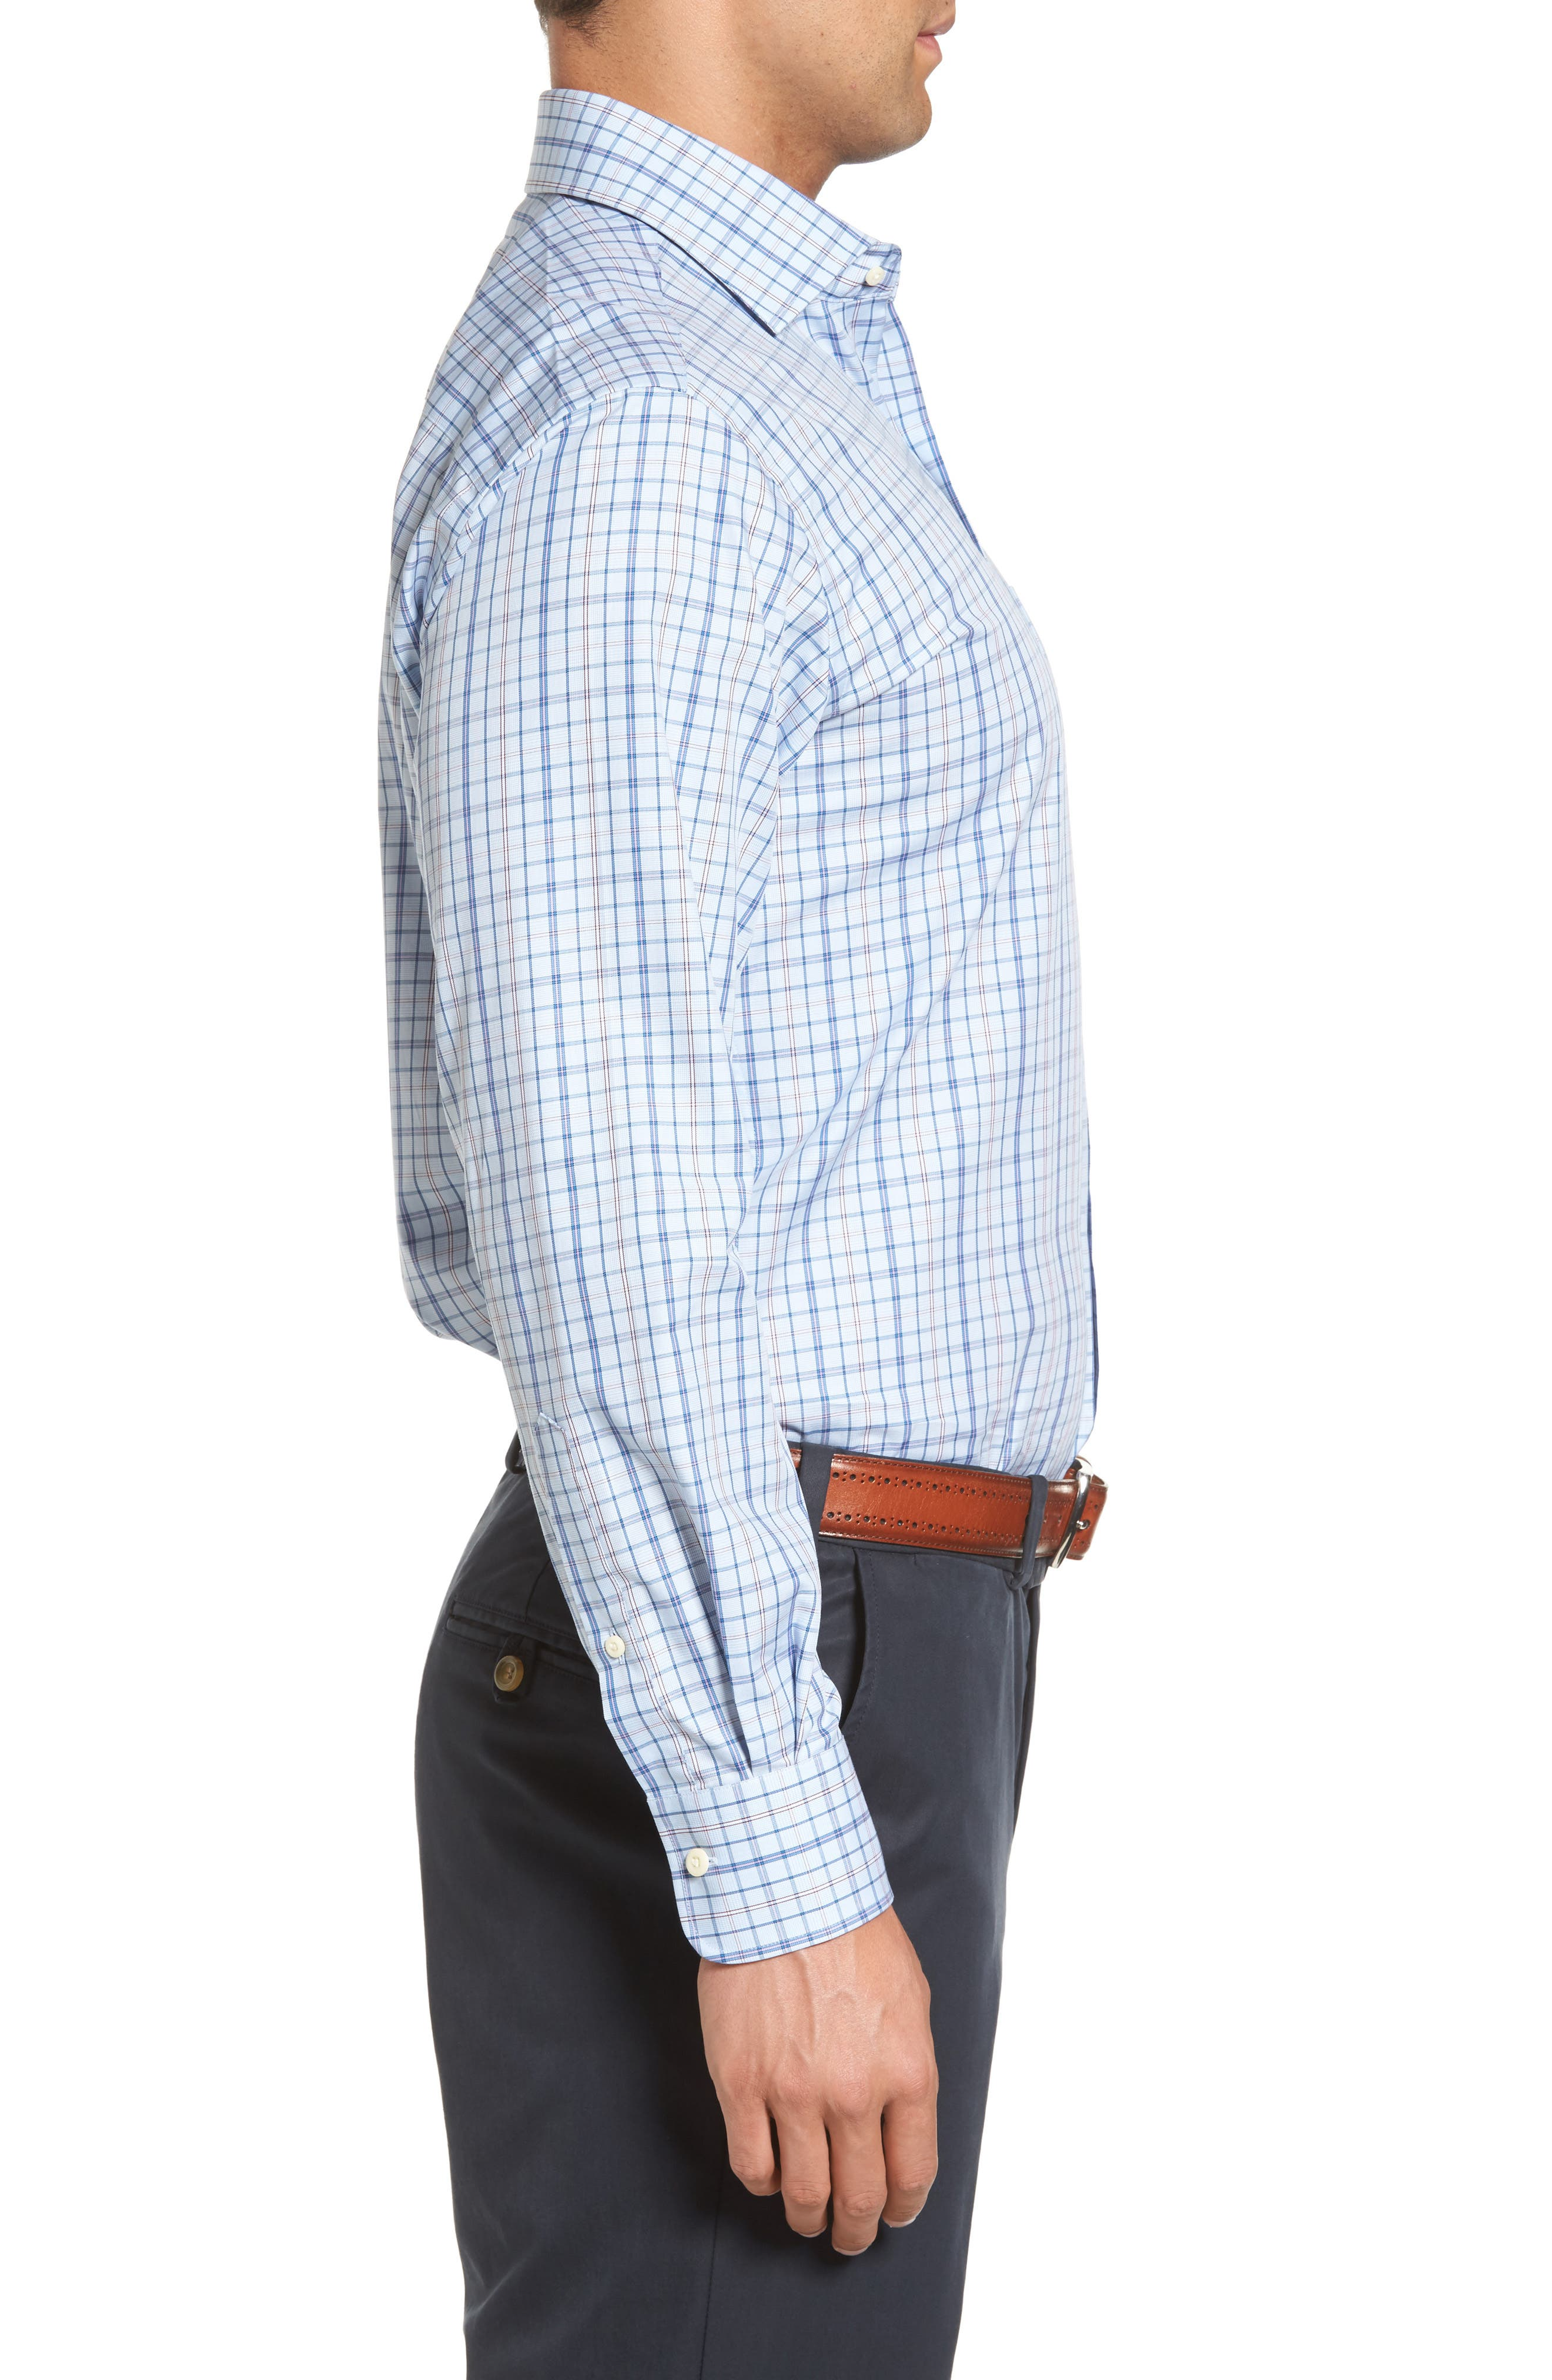 Coastland Regular Fit Plaid Sport Shirt,                             Alternate thumbnail 3, color,                             437